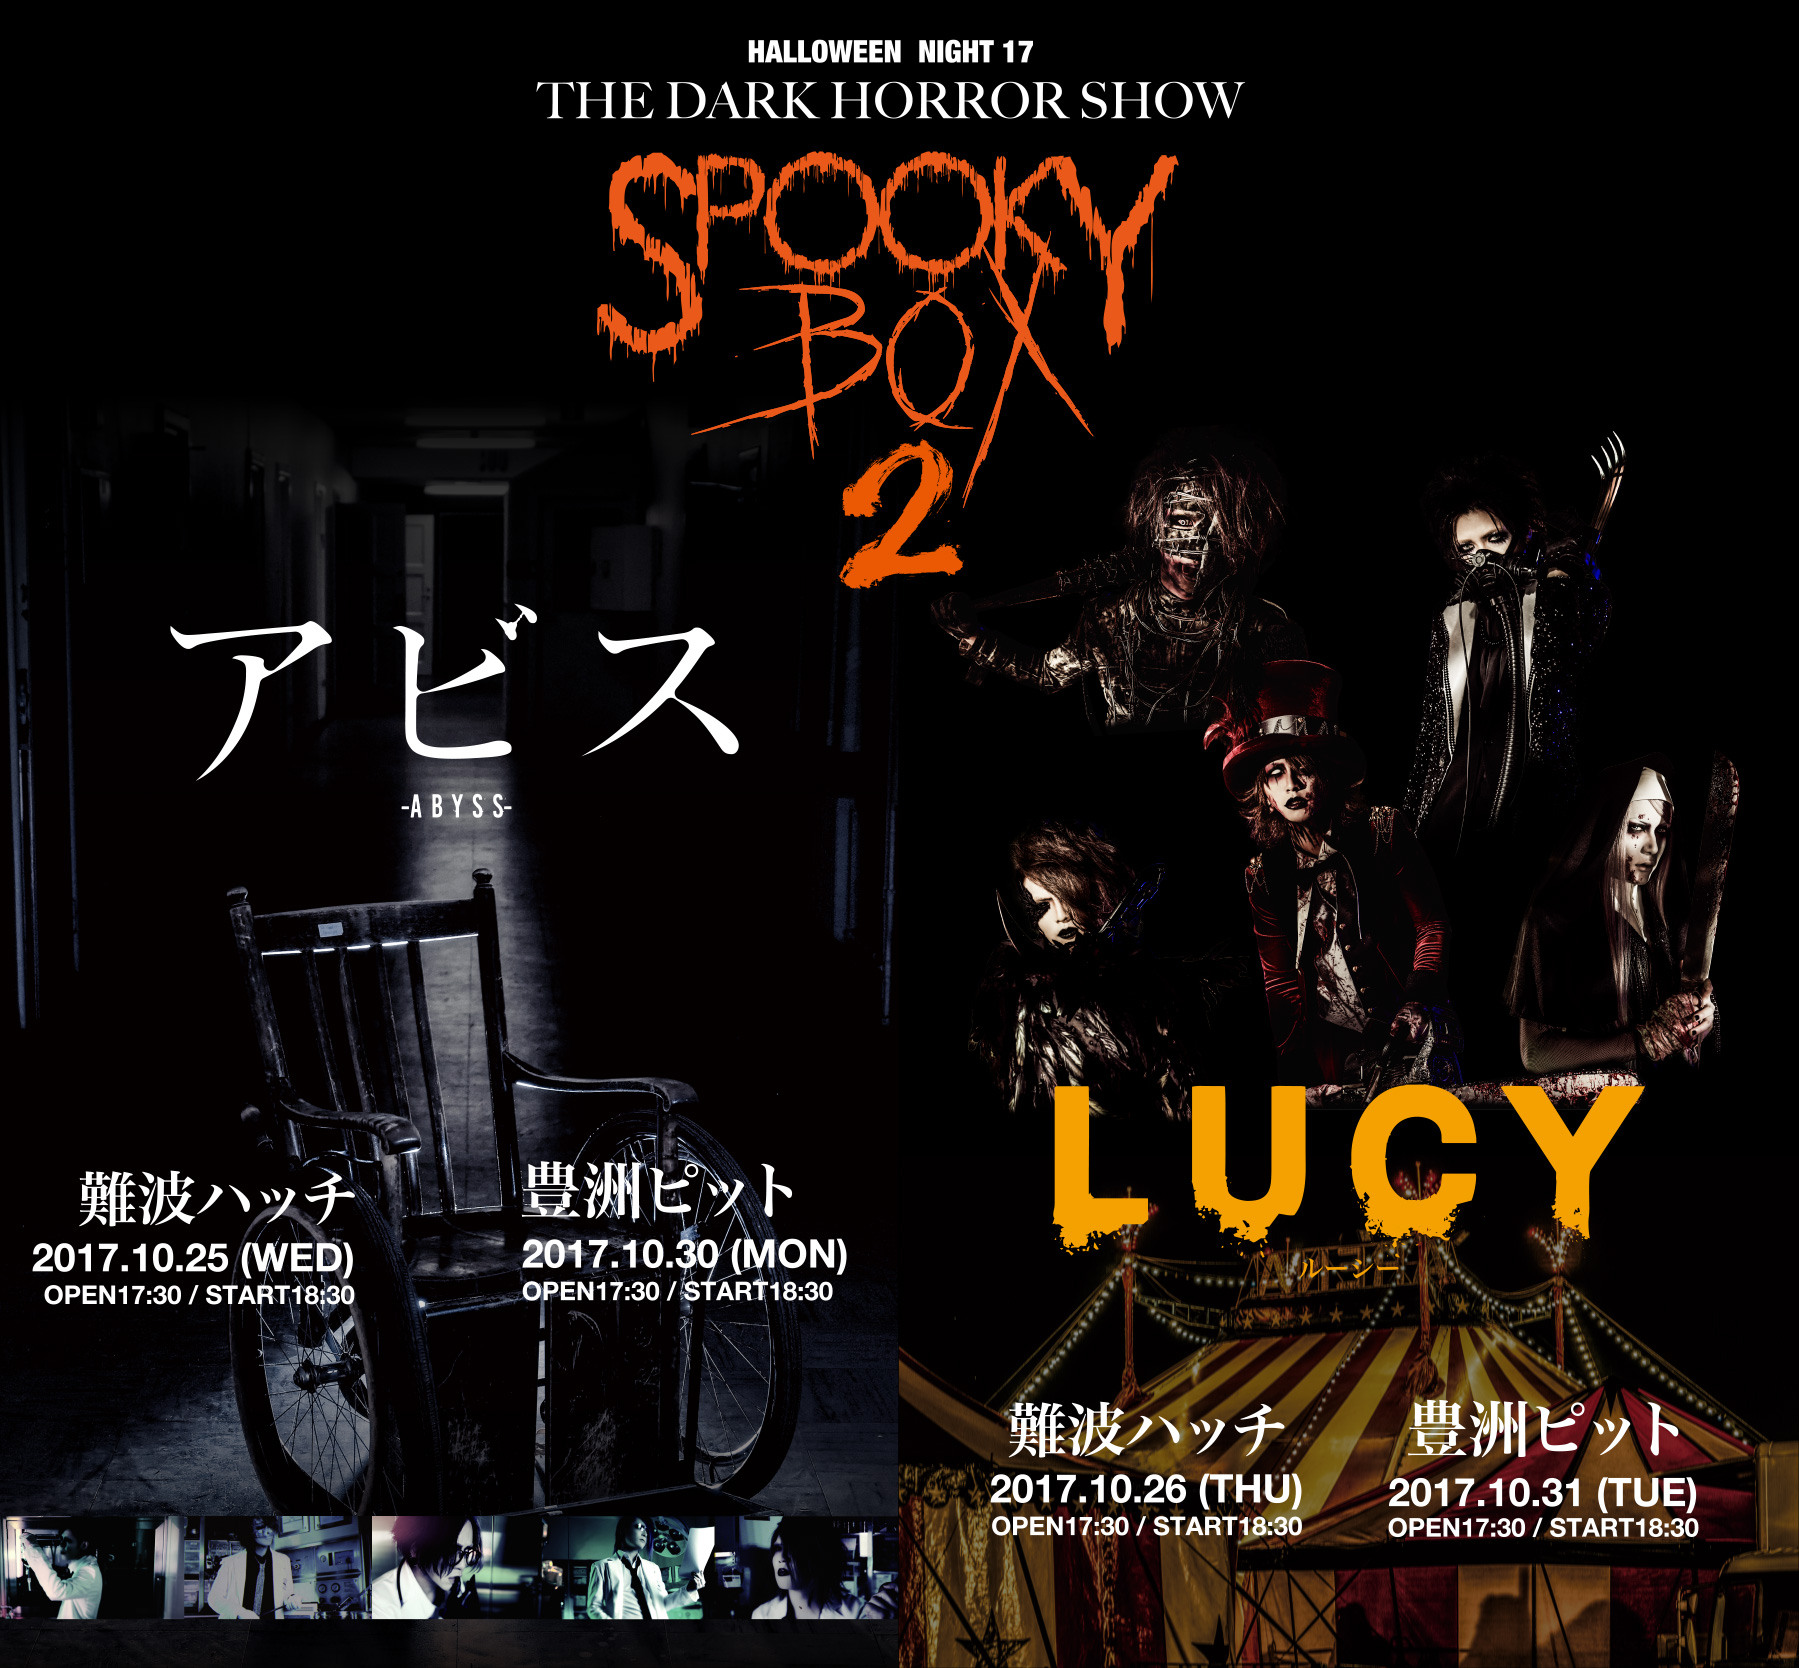 HALLOWEEN NIGHT 17 THE DARK HORROR SHOW SPOOKY BOX2 アビス・ルーシー